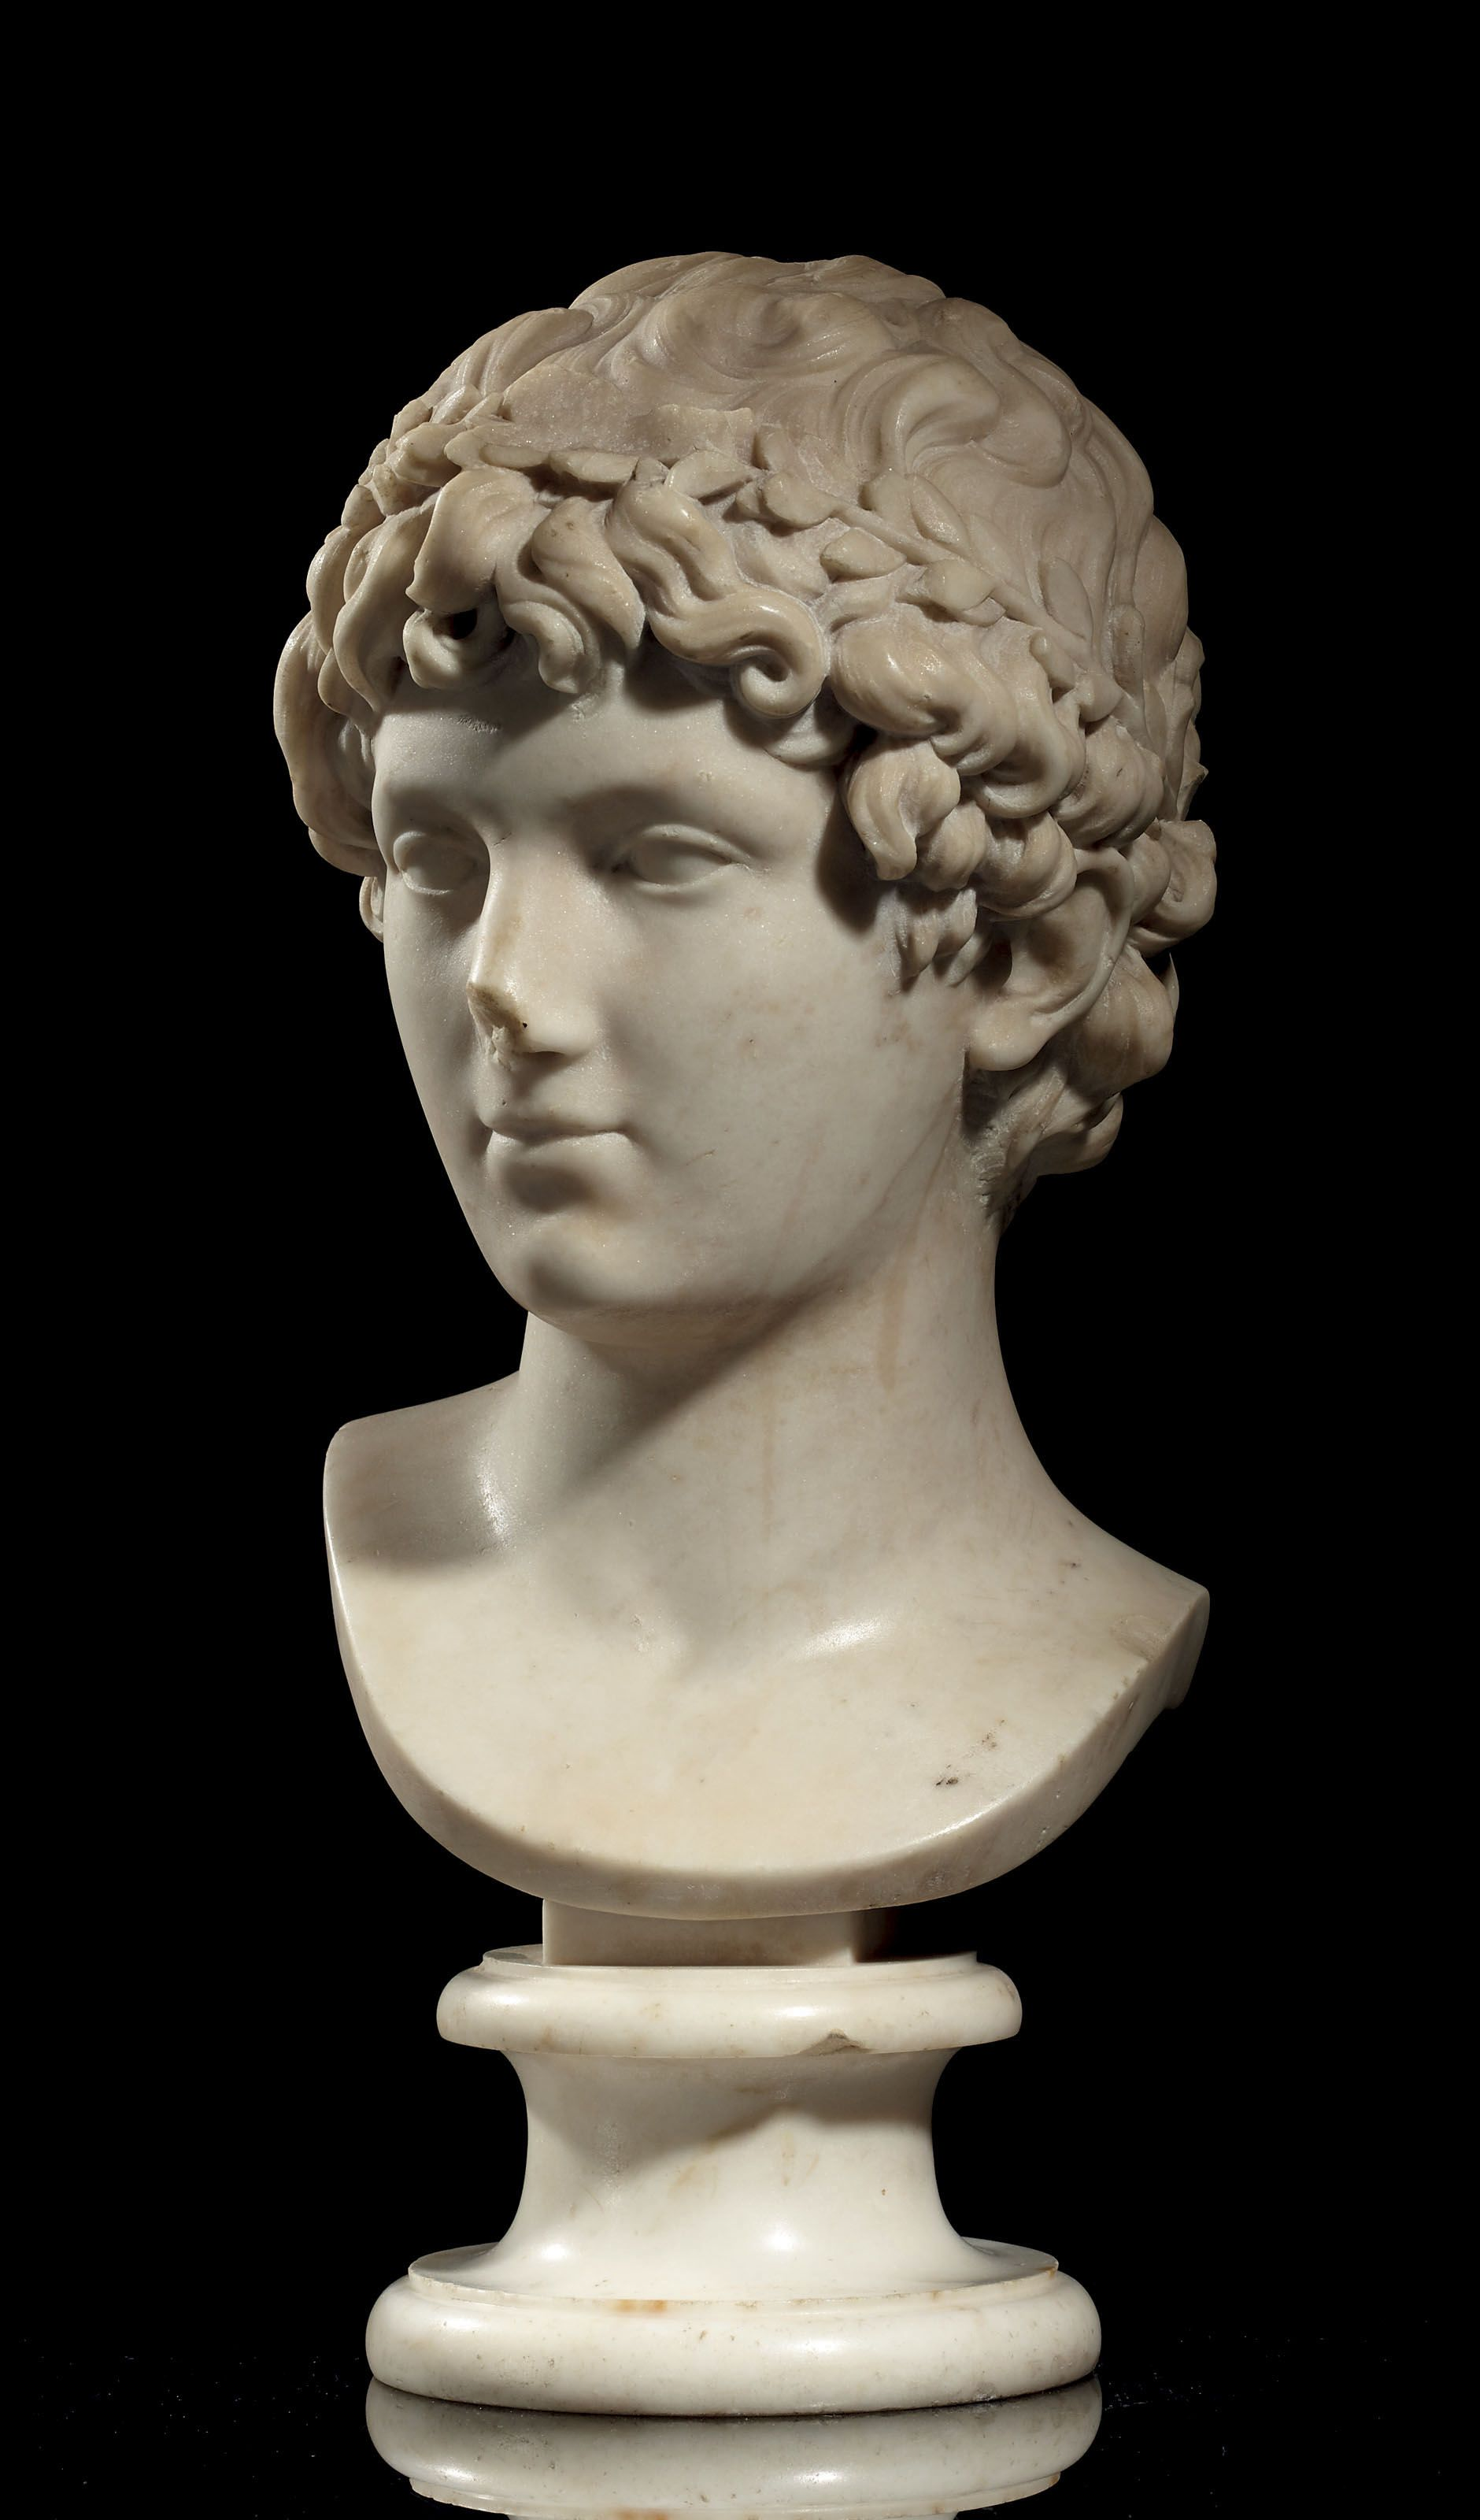 By Jean Antoine Houdon 1741 1828 Dated 1775 A Marble Bust Of A Roman Youth Late 18th Century Mid 18t Marble Bust European Sculpture Museum Of Fine Arts